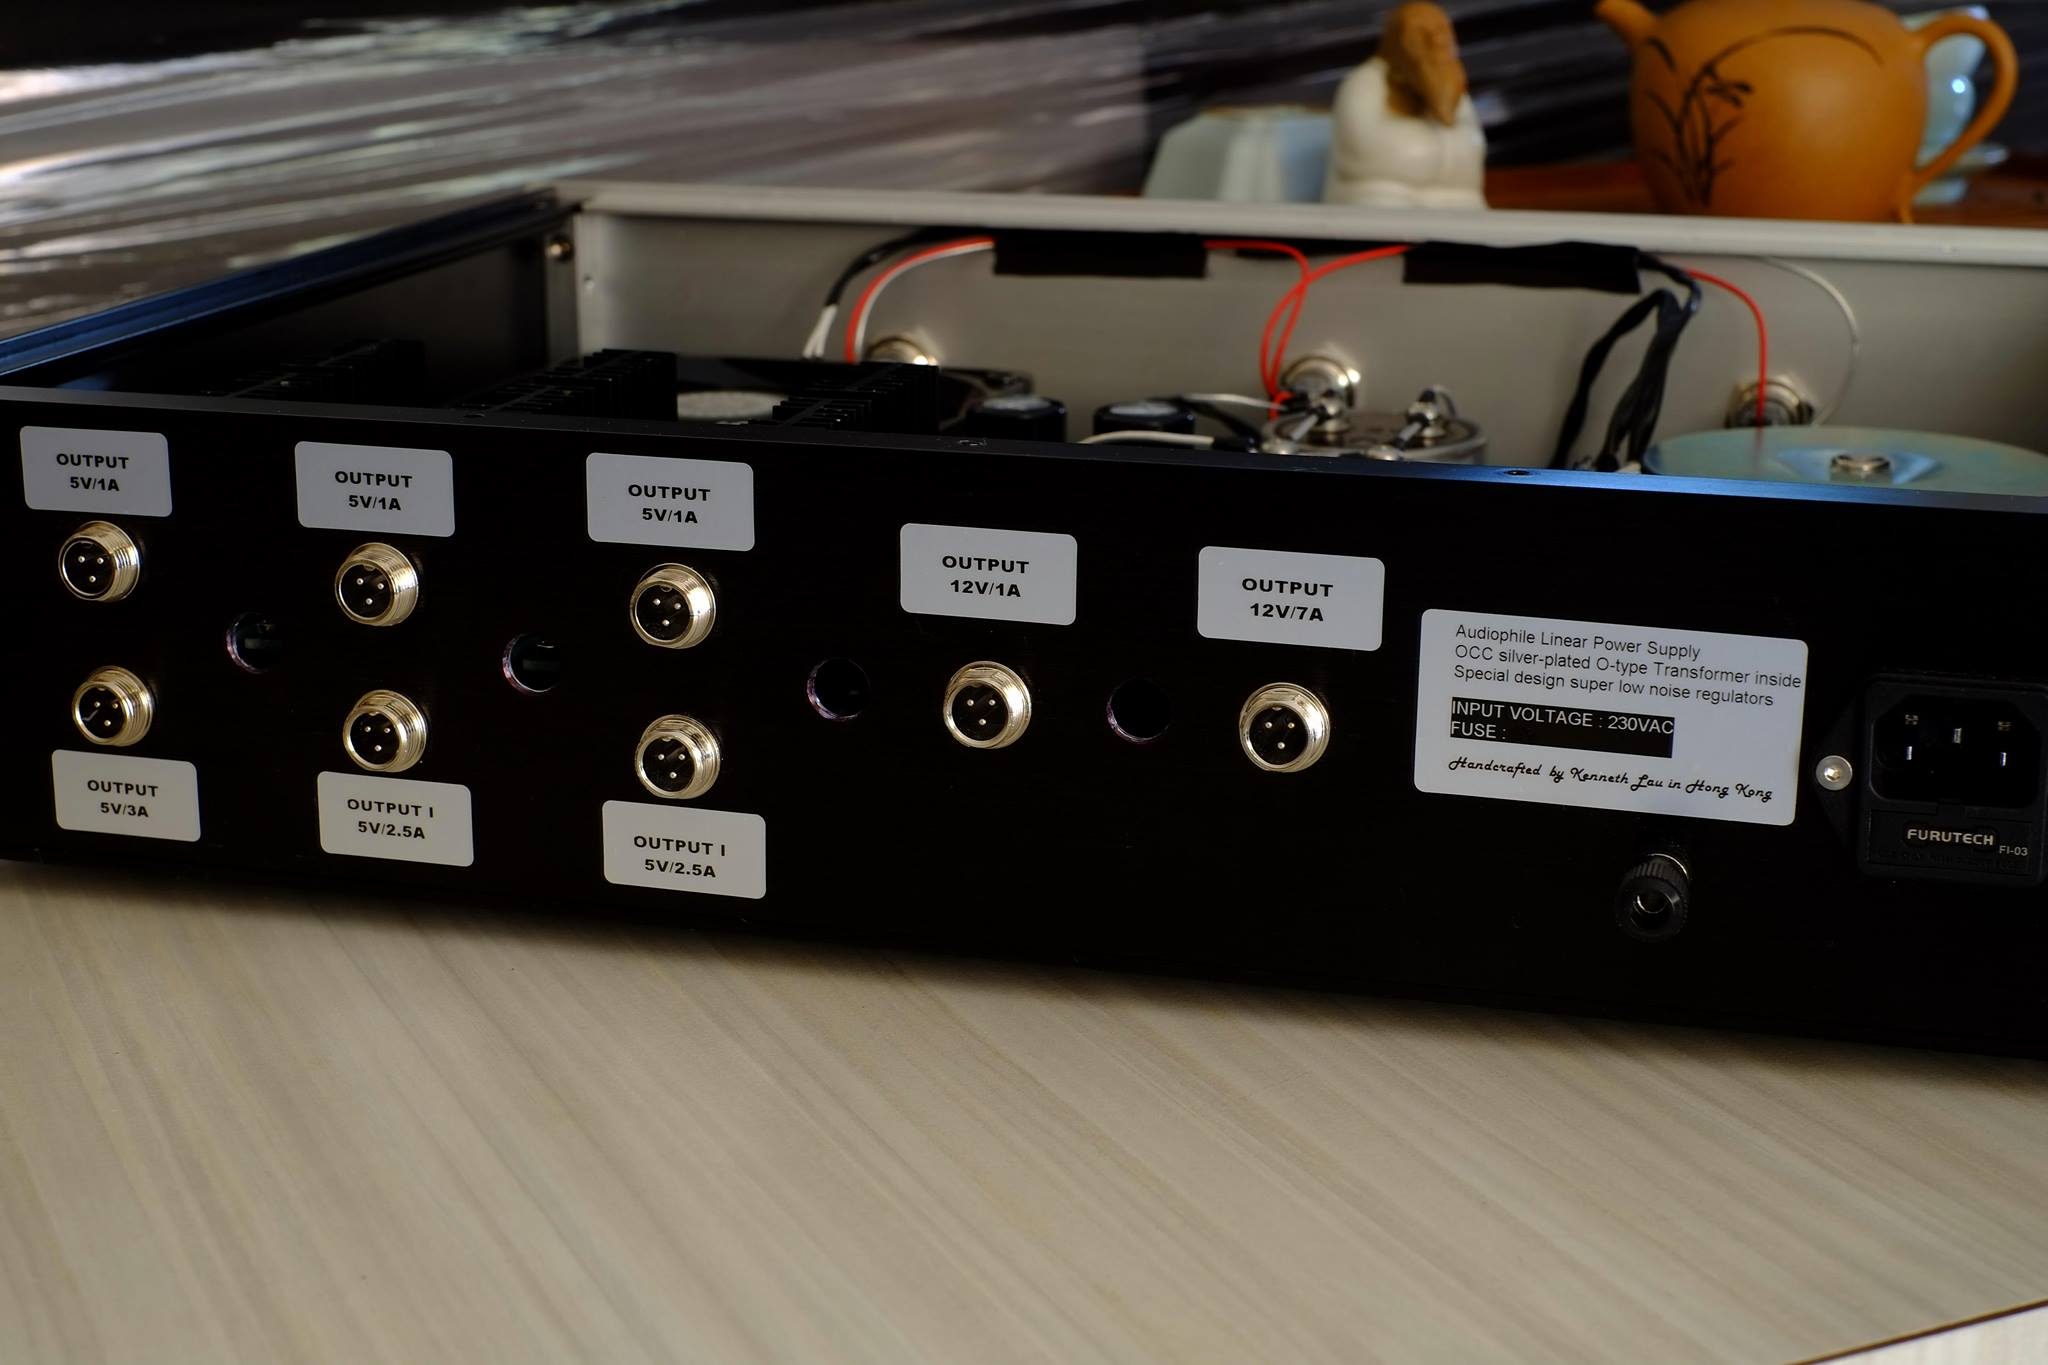 Handcrafted Audiophile Linear Power Supply by Kenneth Lau